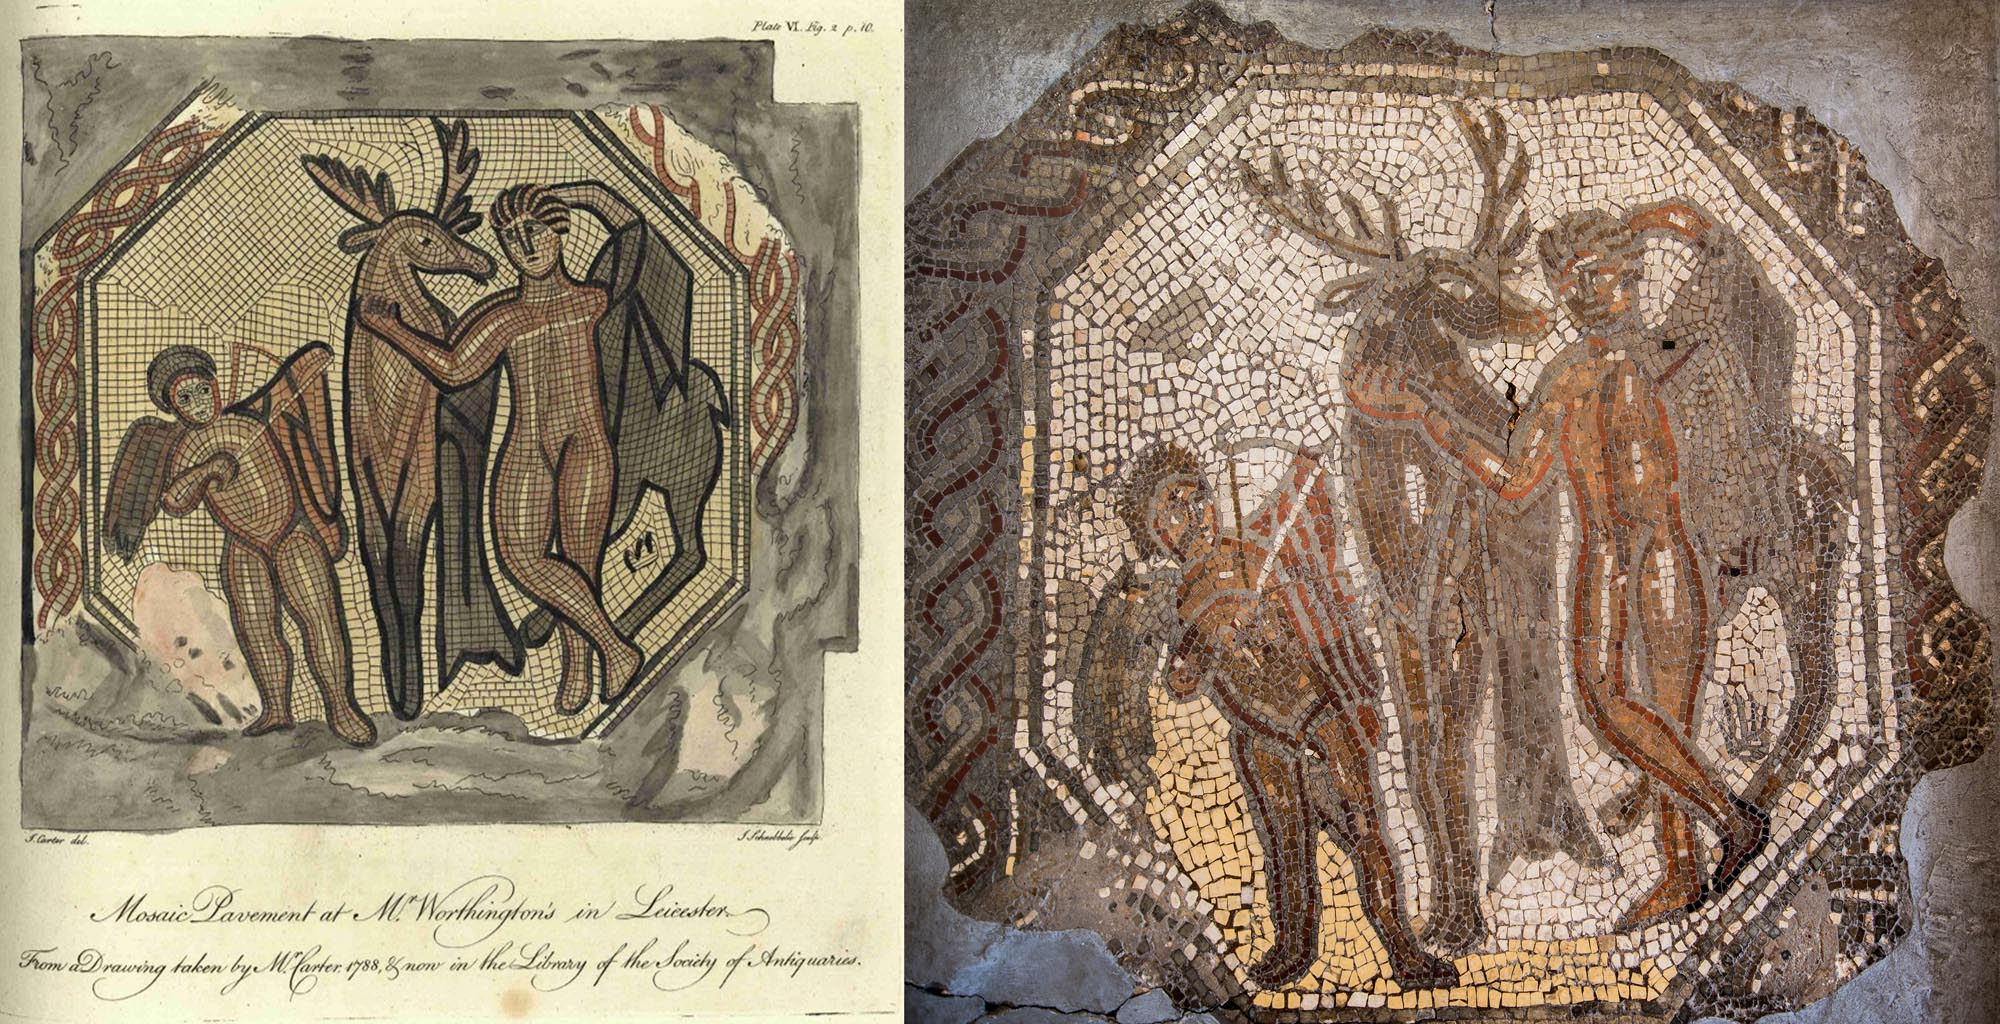 Left, An early drawing of the Cyparissus mosaic by S. Carter in 1788. Right, The Cyparissus mosaic, found on Highcross Street in Leicester in c.1675. The mosaic is one of the earliest recorded mosaics in Britain -